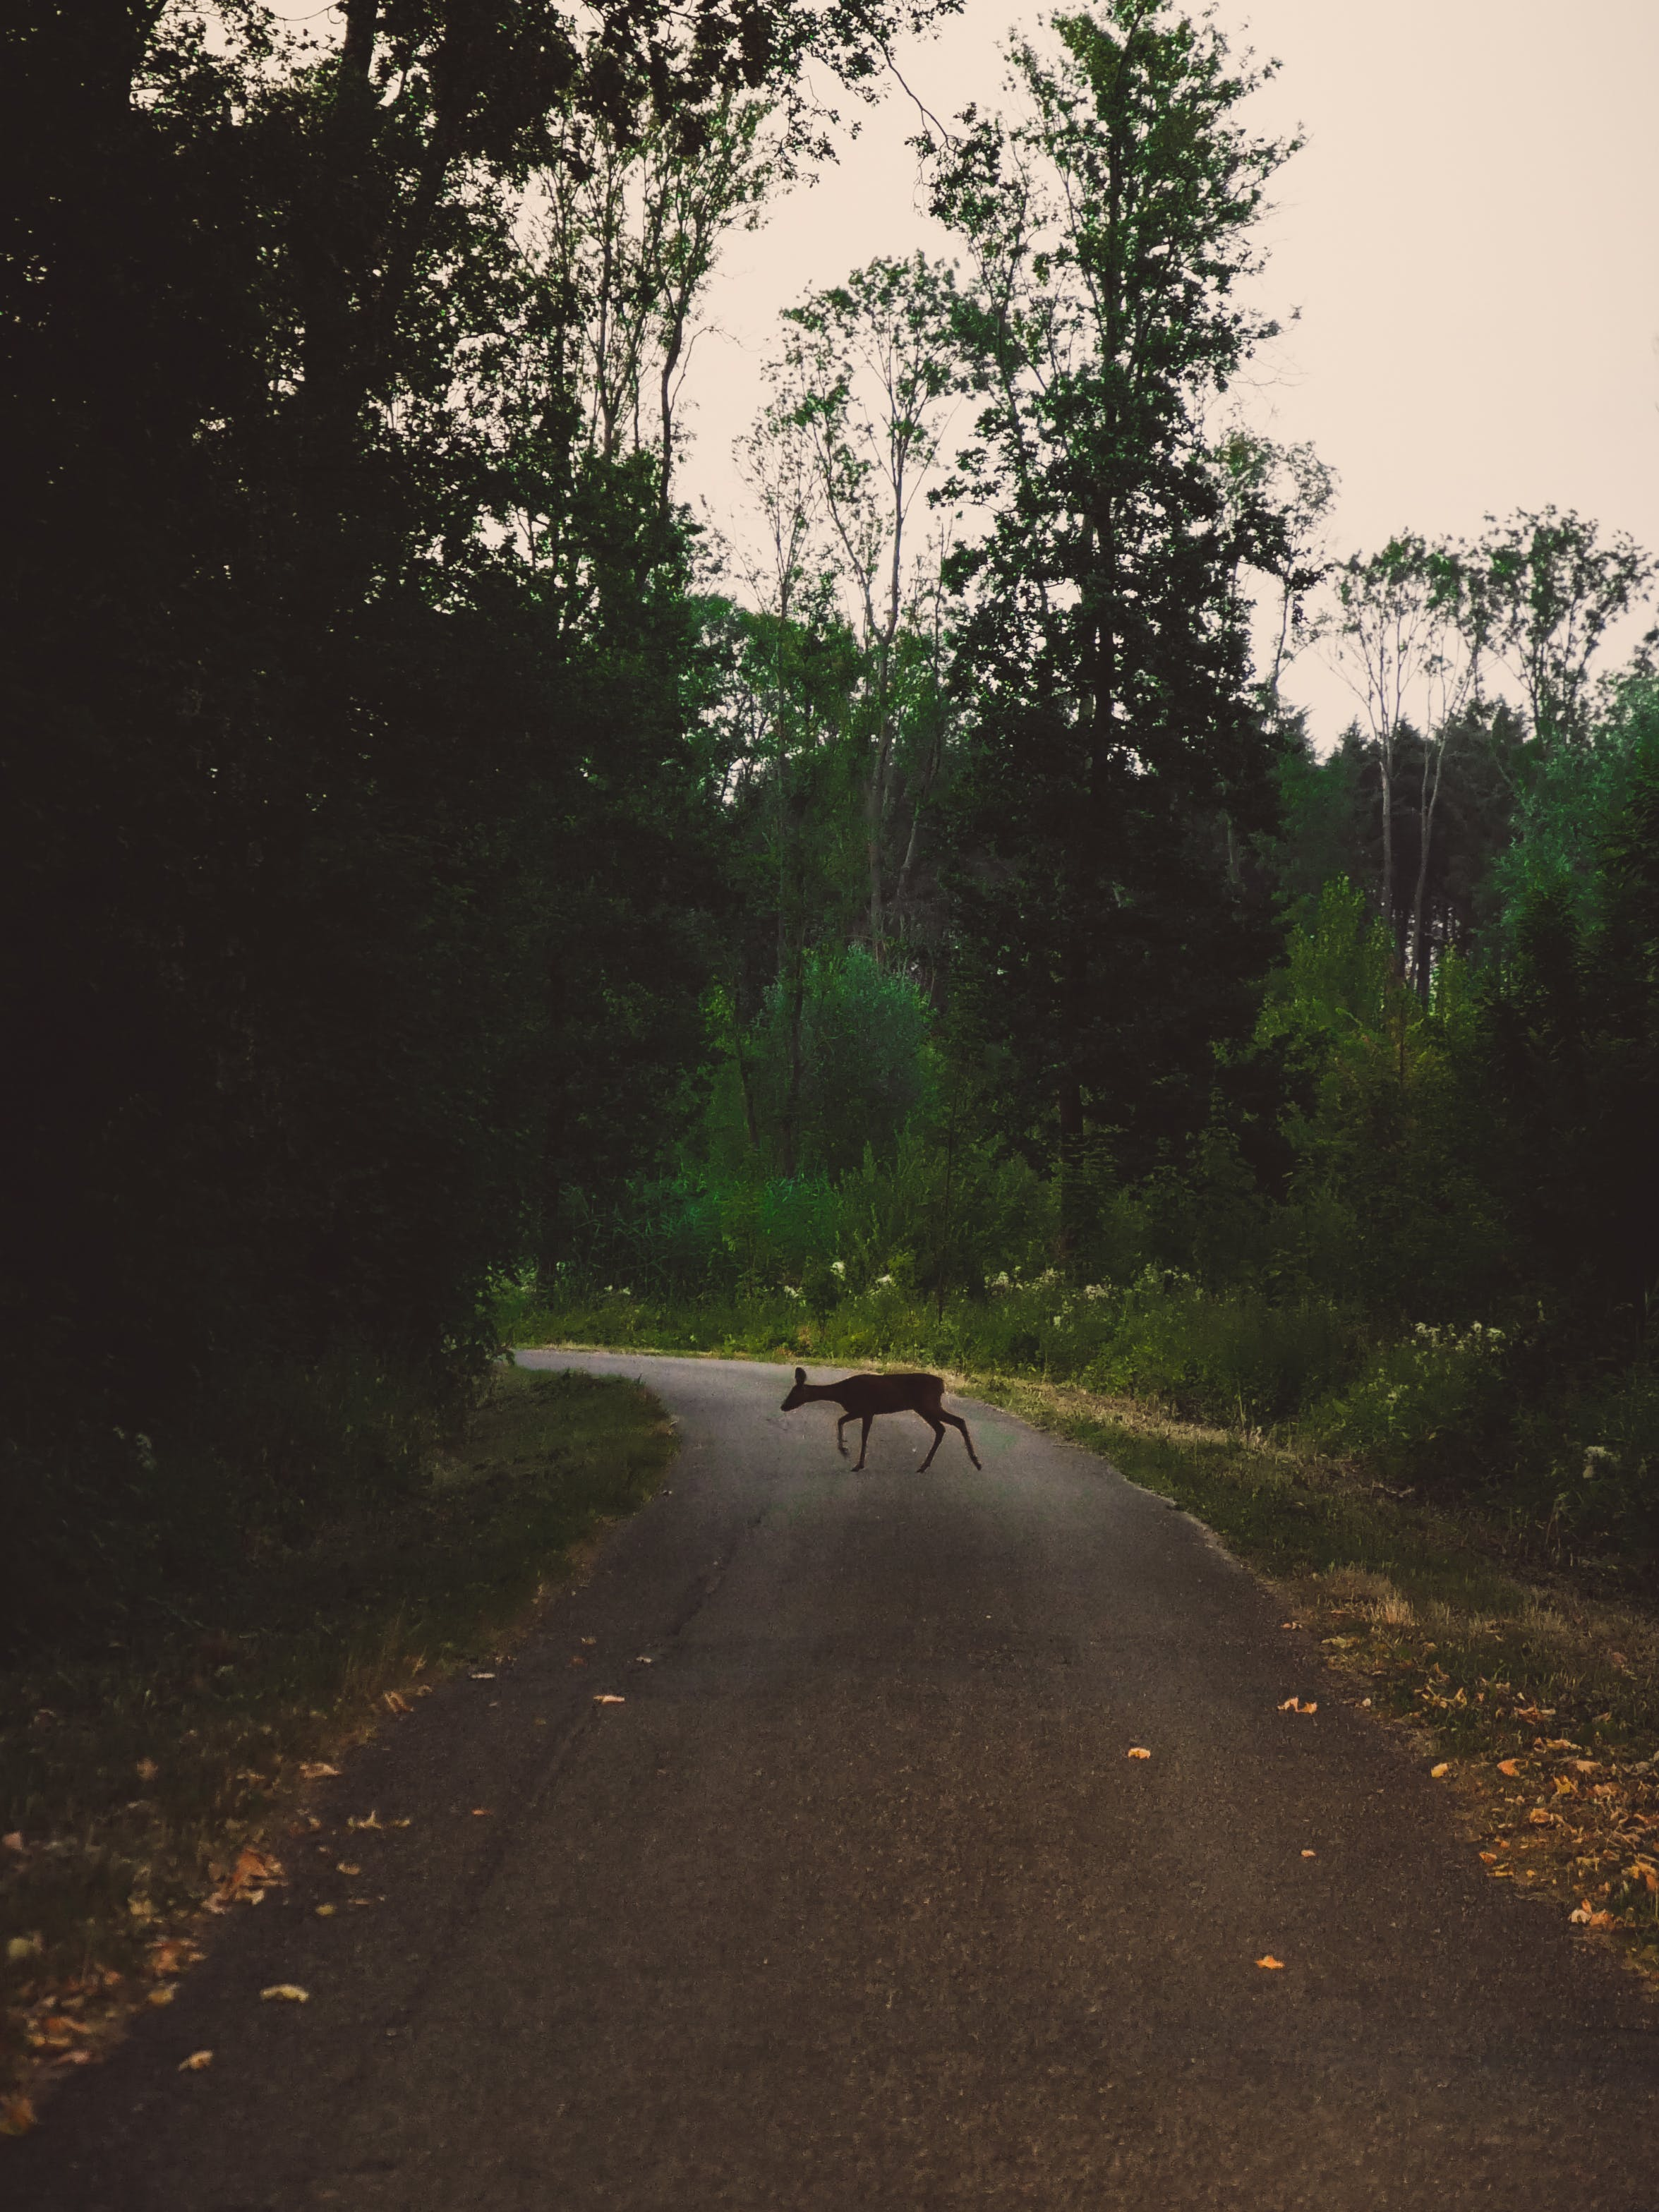 Deer In The Middle Of The Road Between Trees